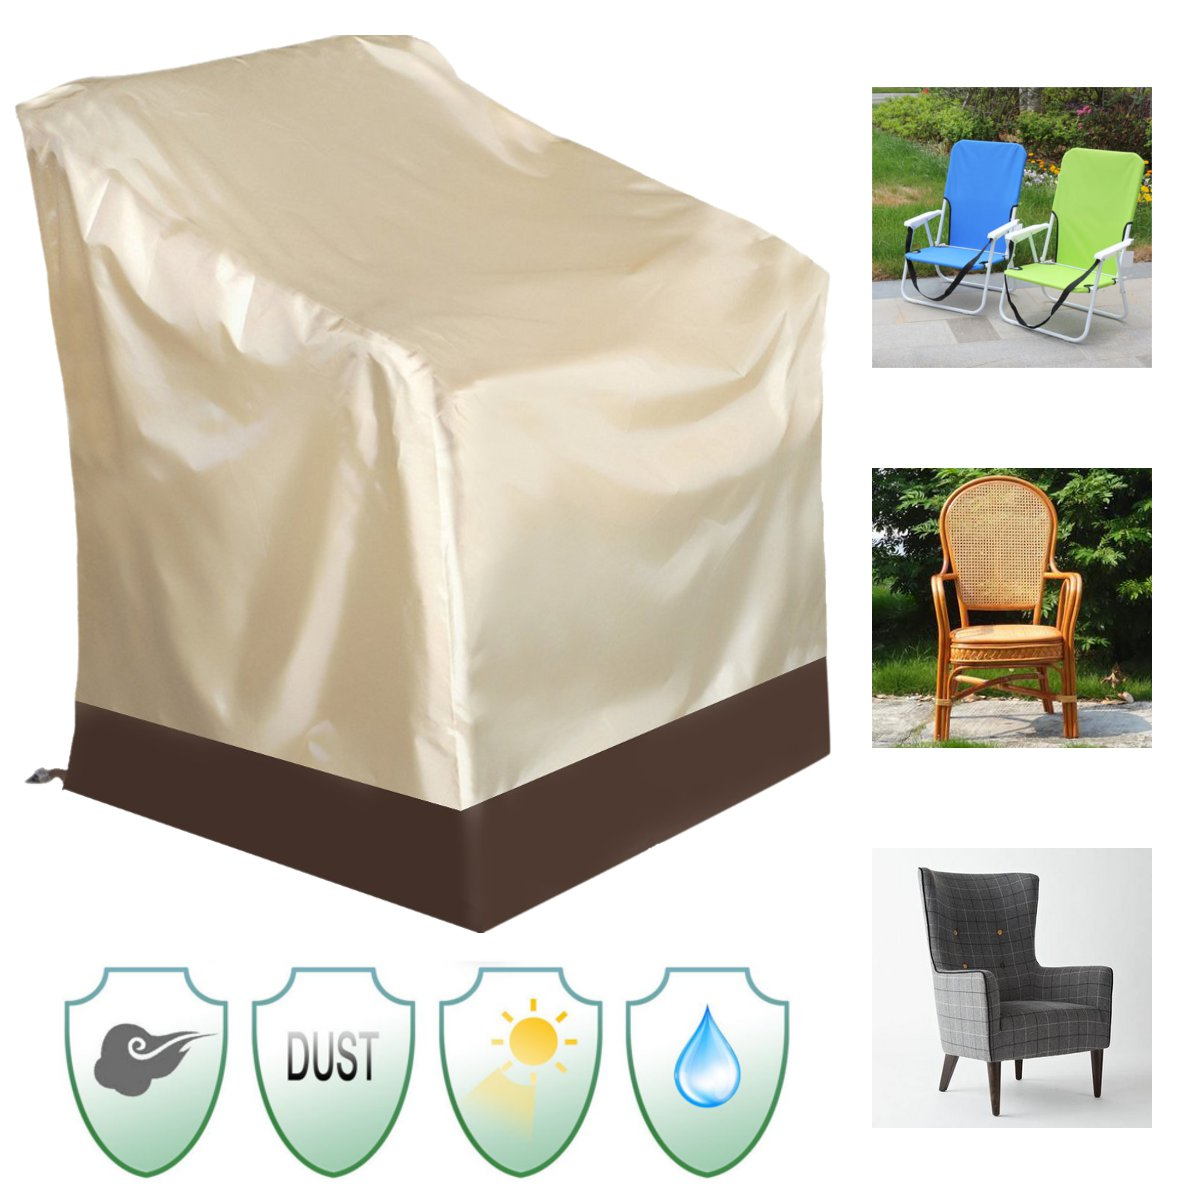 Ordinaire Meigar High Back Chair Covers Outdoor Yard Furniture Protection Accessories  Veranda Patio Rocking Chair Cover